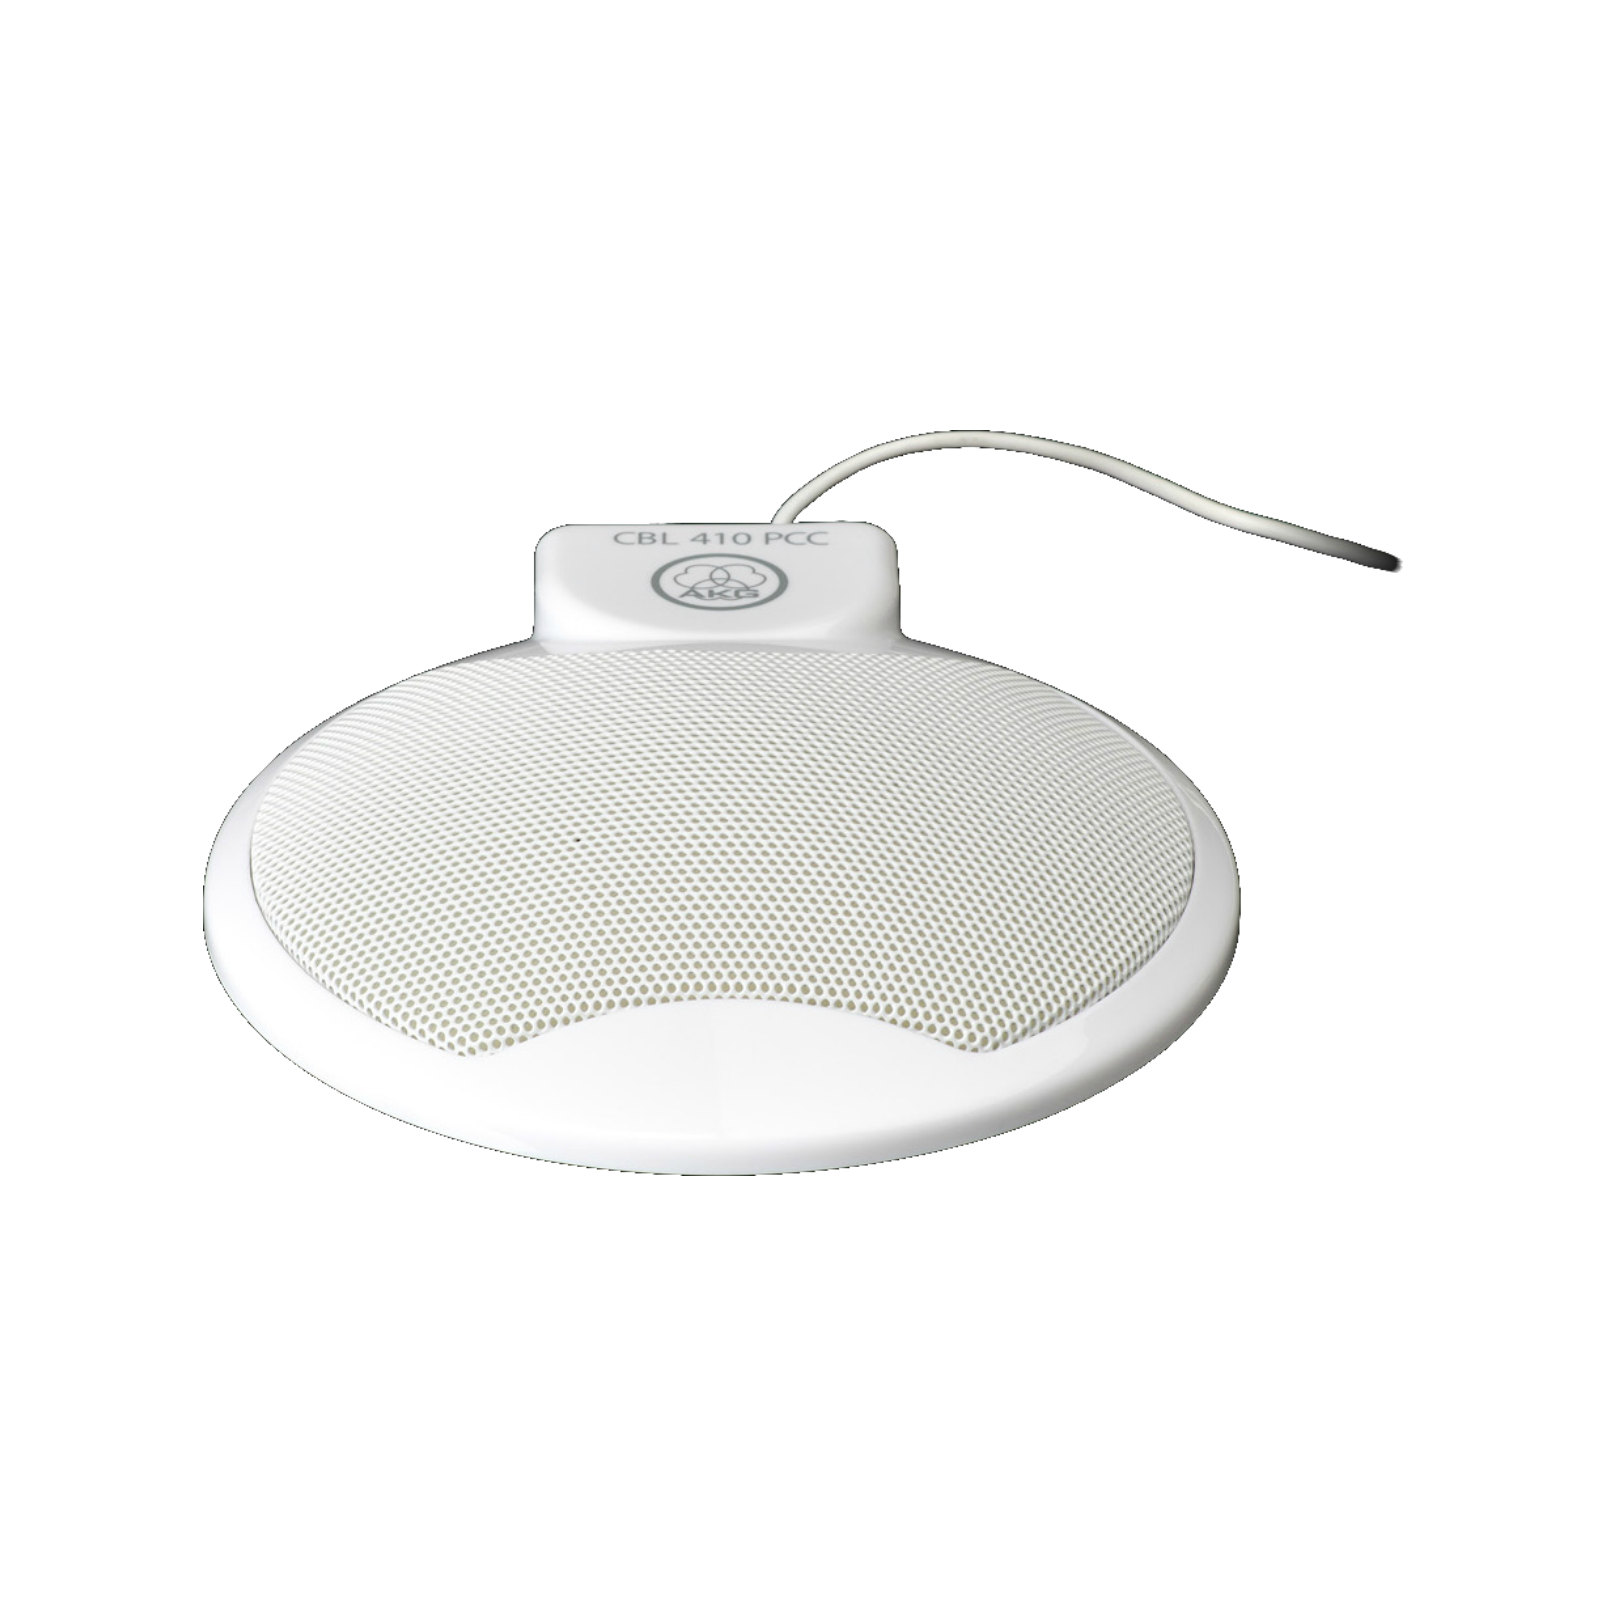 CBL410 PCC - White - PC microphone for VoIP and teleconferencing applications - Hero